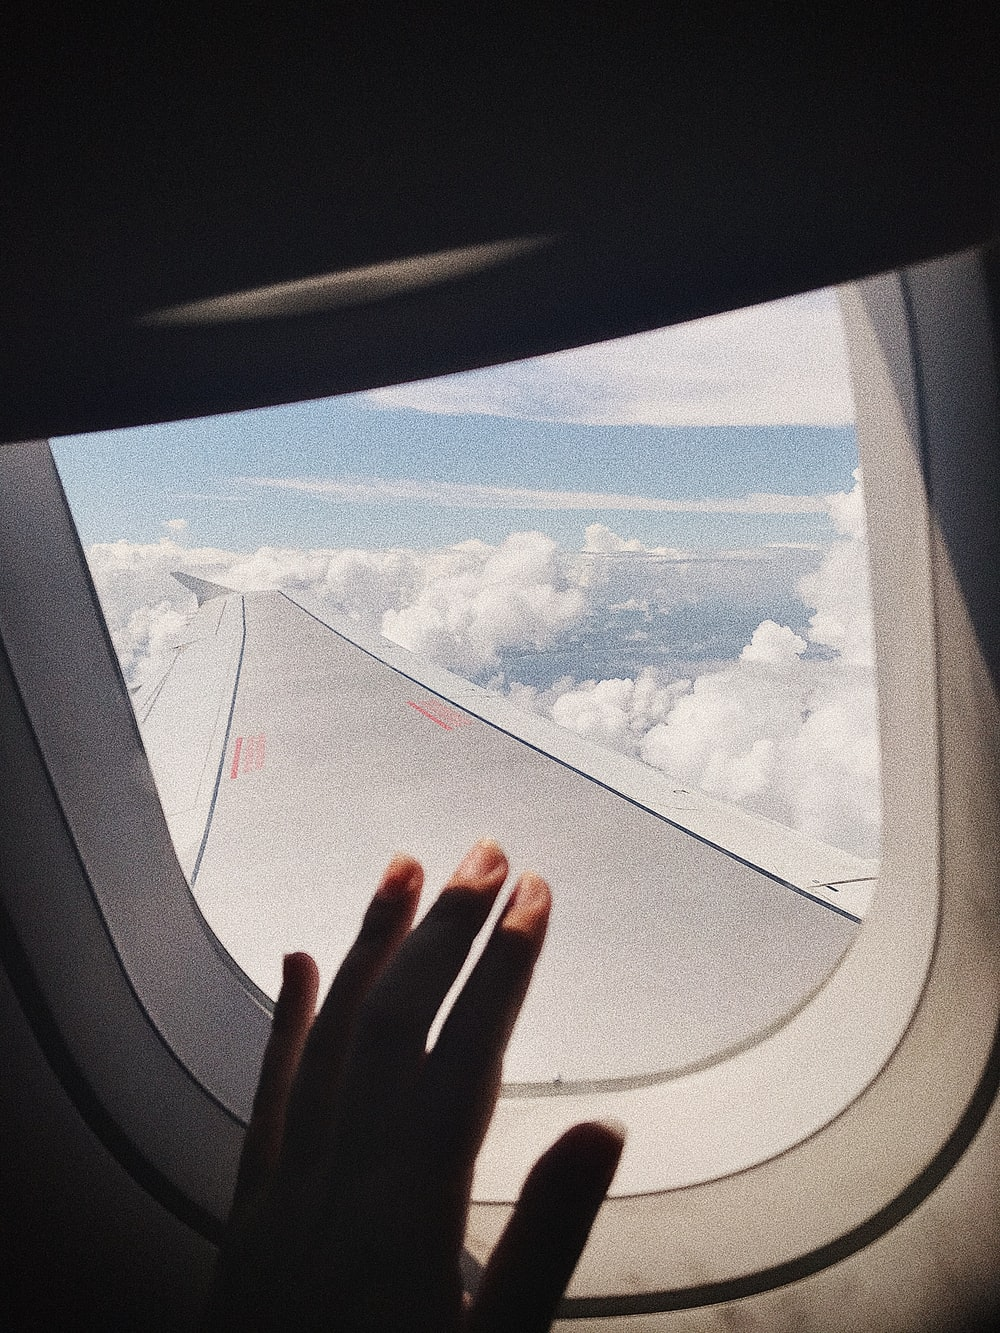 person hand on window of airplane